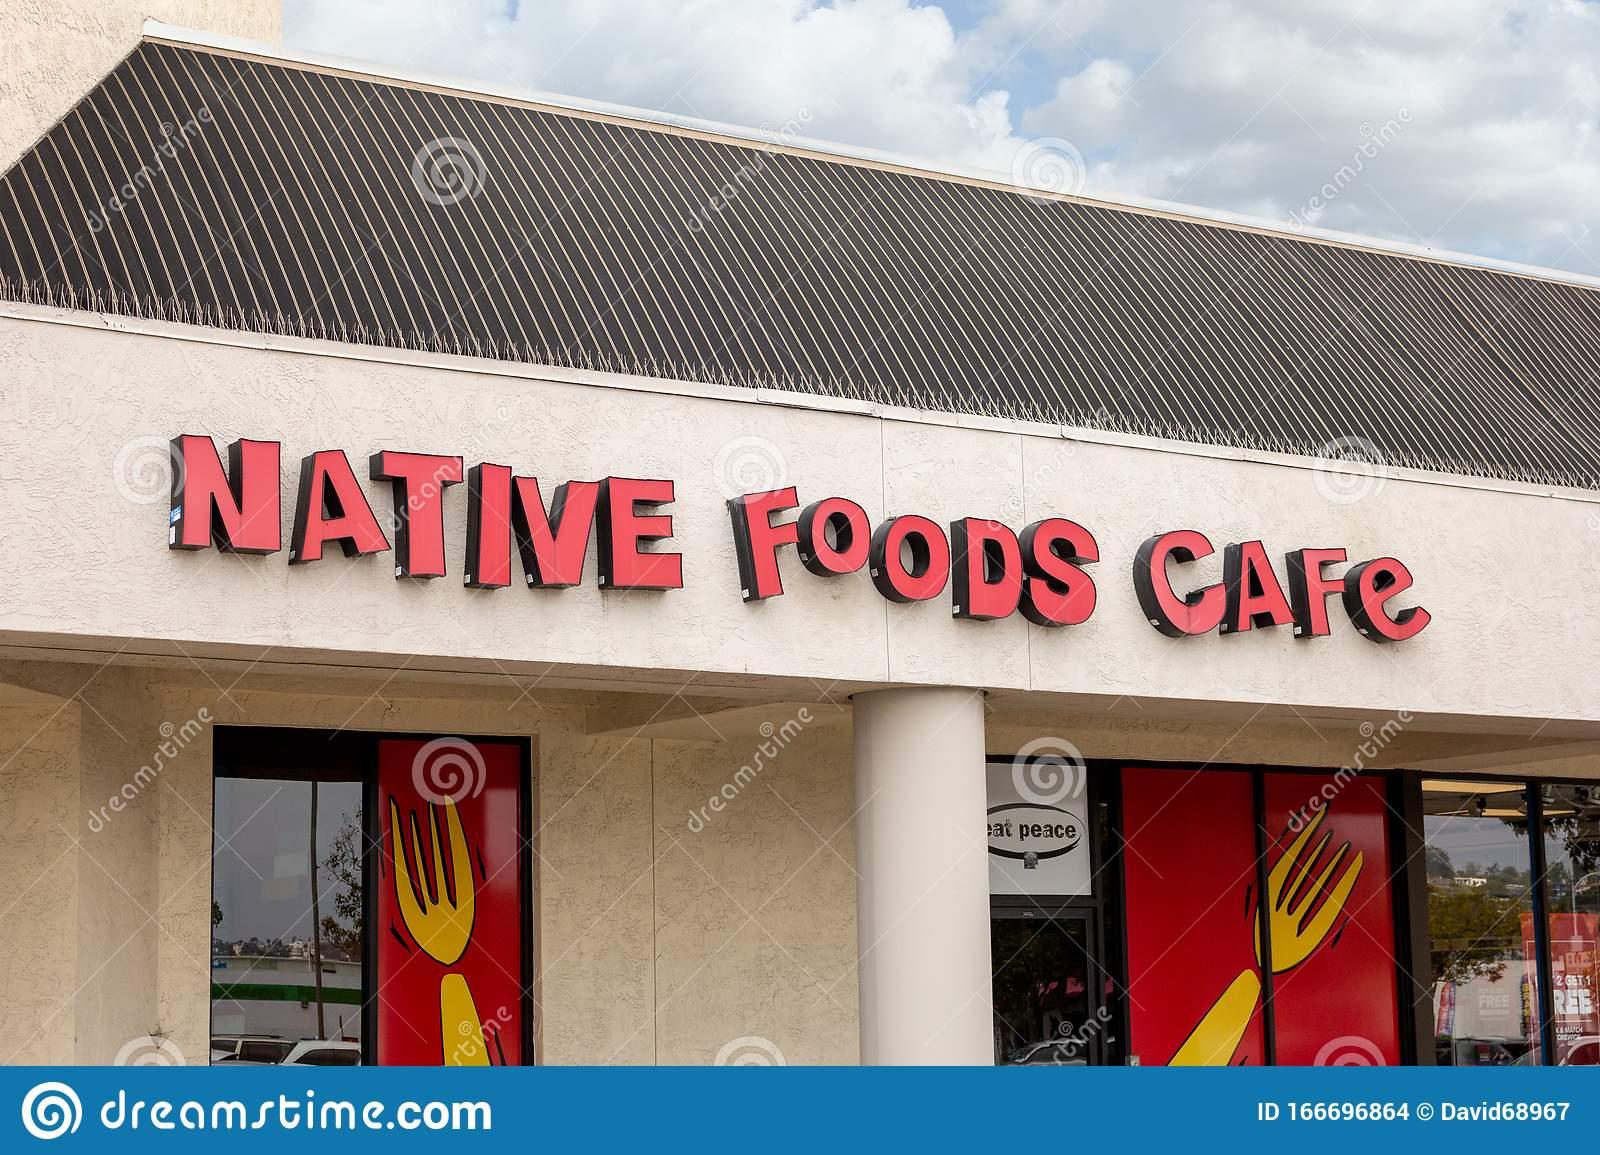 Native Foods Cafe Sign Editorial Stock Image Image Of Order 166696864